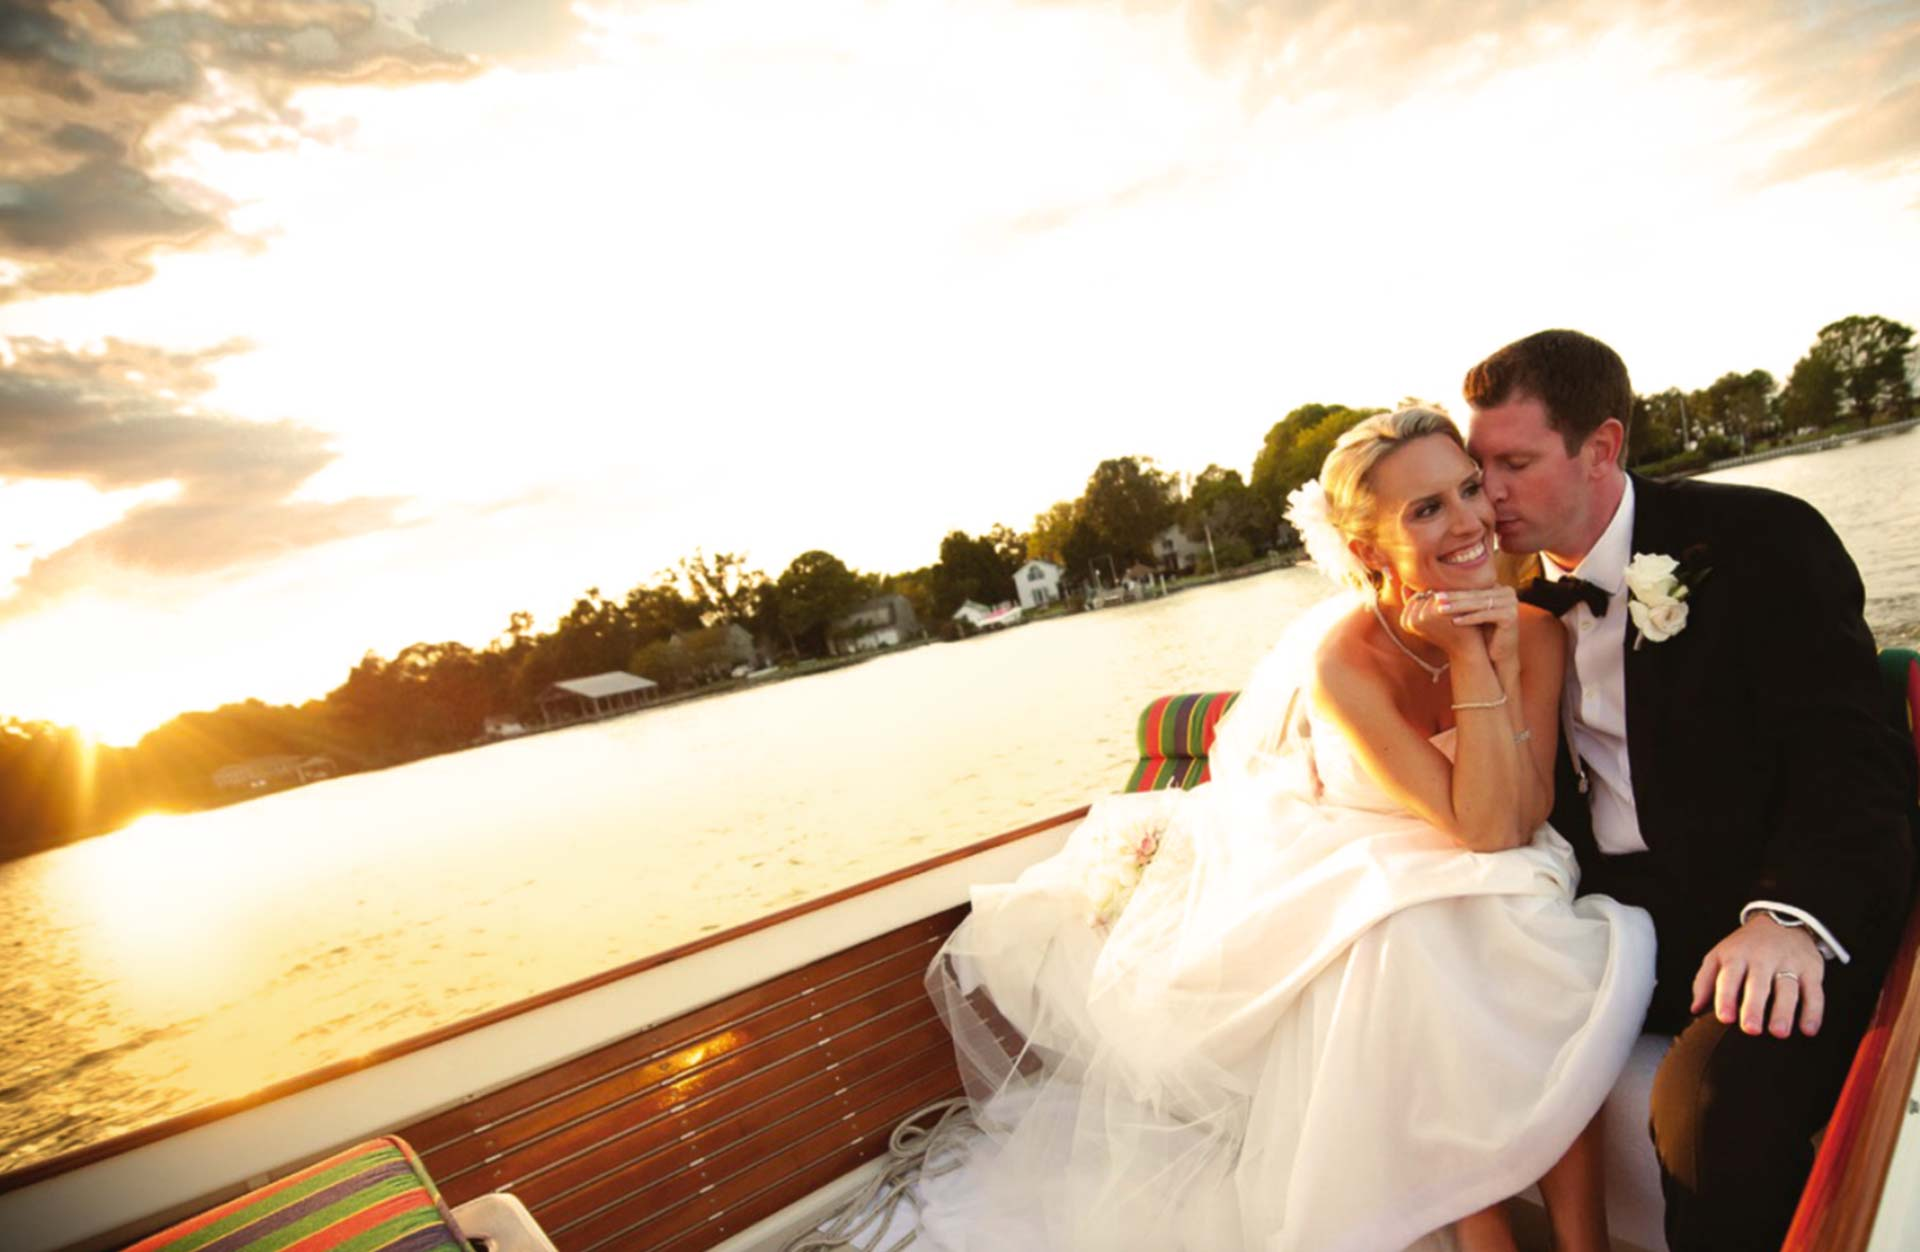 The Oaks Waterfront Inn & Events Maryland Wedding Venues waterfront wedding boat tour